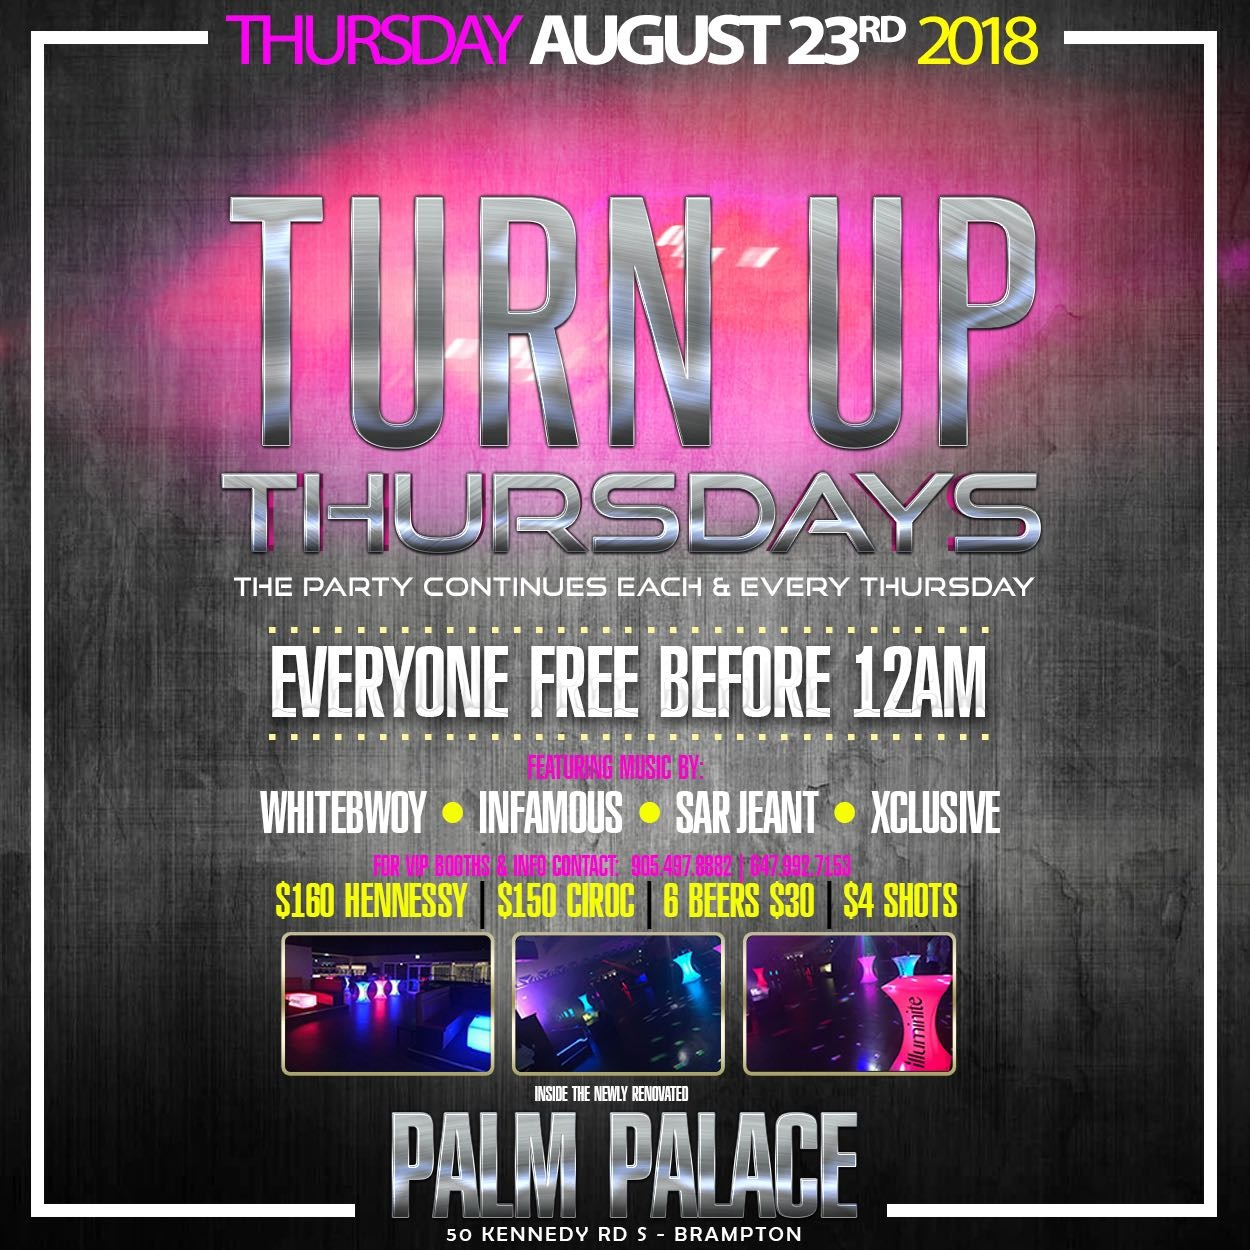 Turn Up Thursdays - Party Continues